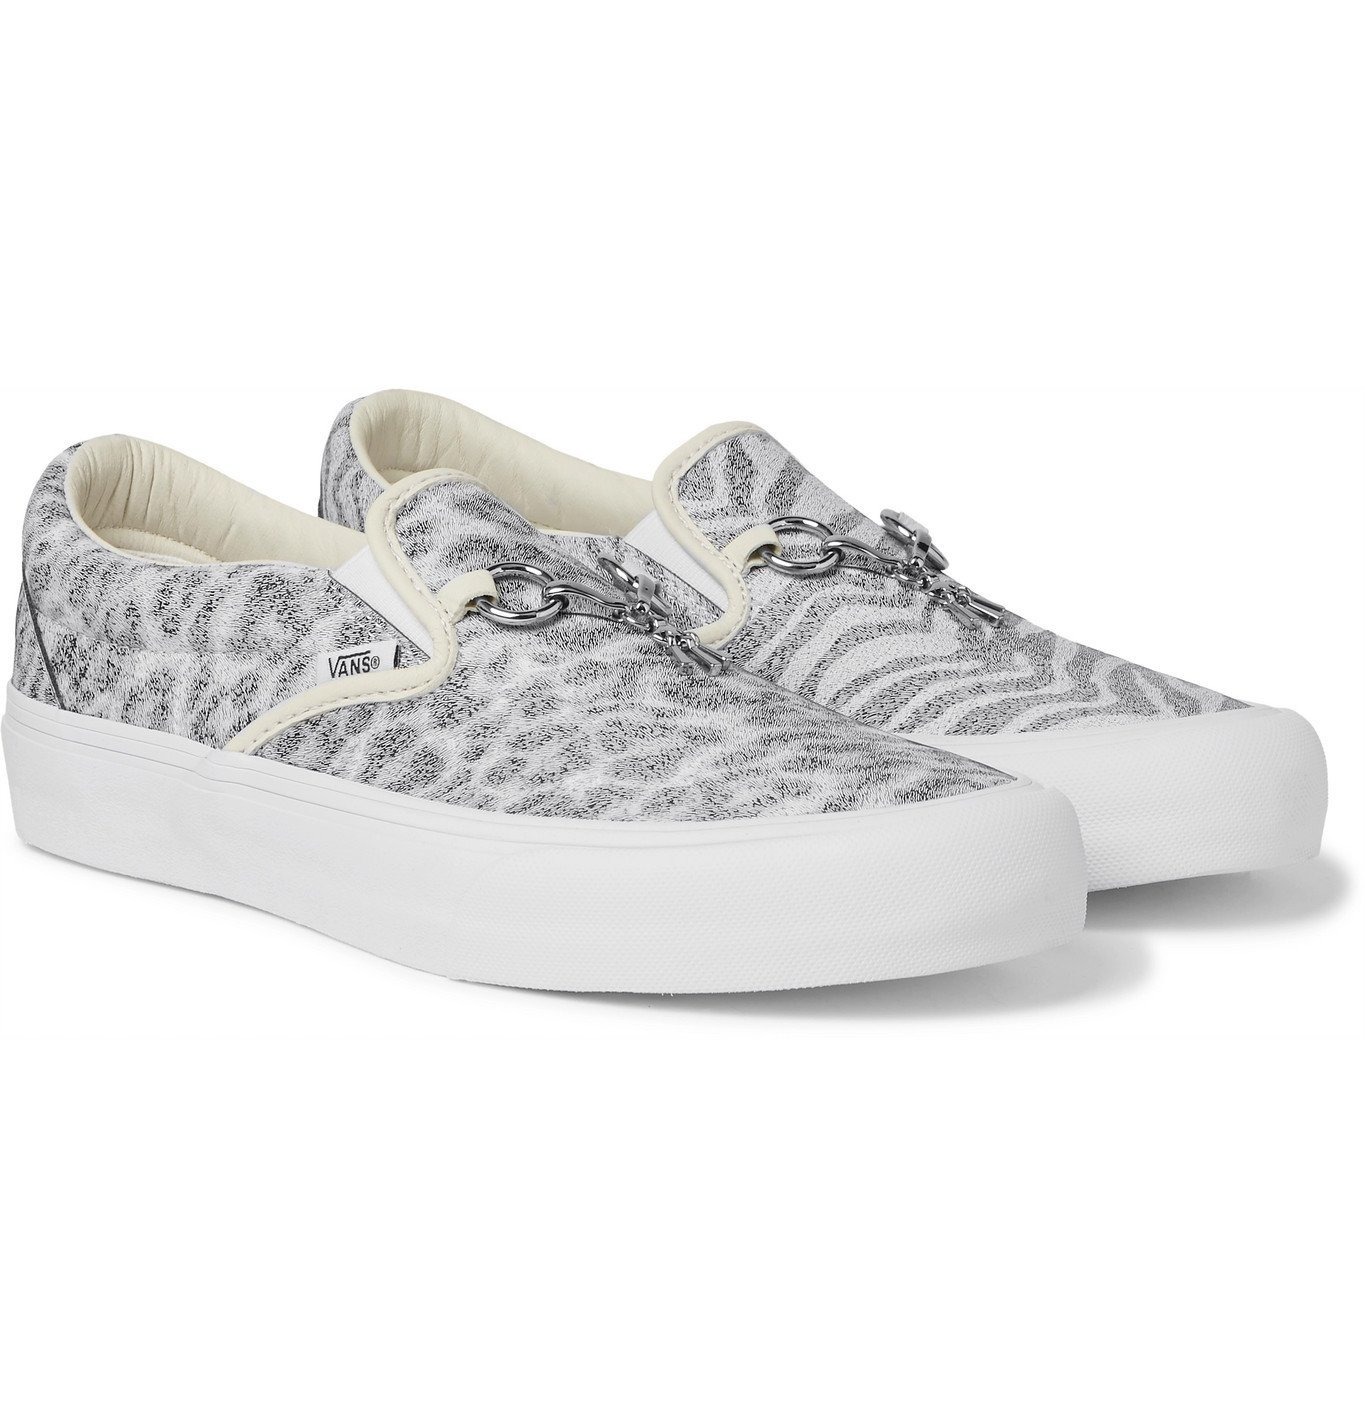 Photo: Vans - Needles Classic VLT LX Animal-Print Faux Leather Slip-On Sneakers - White